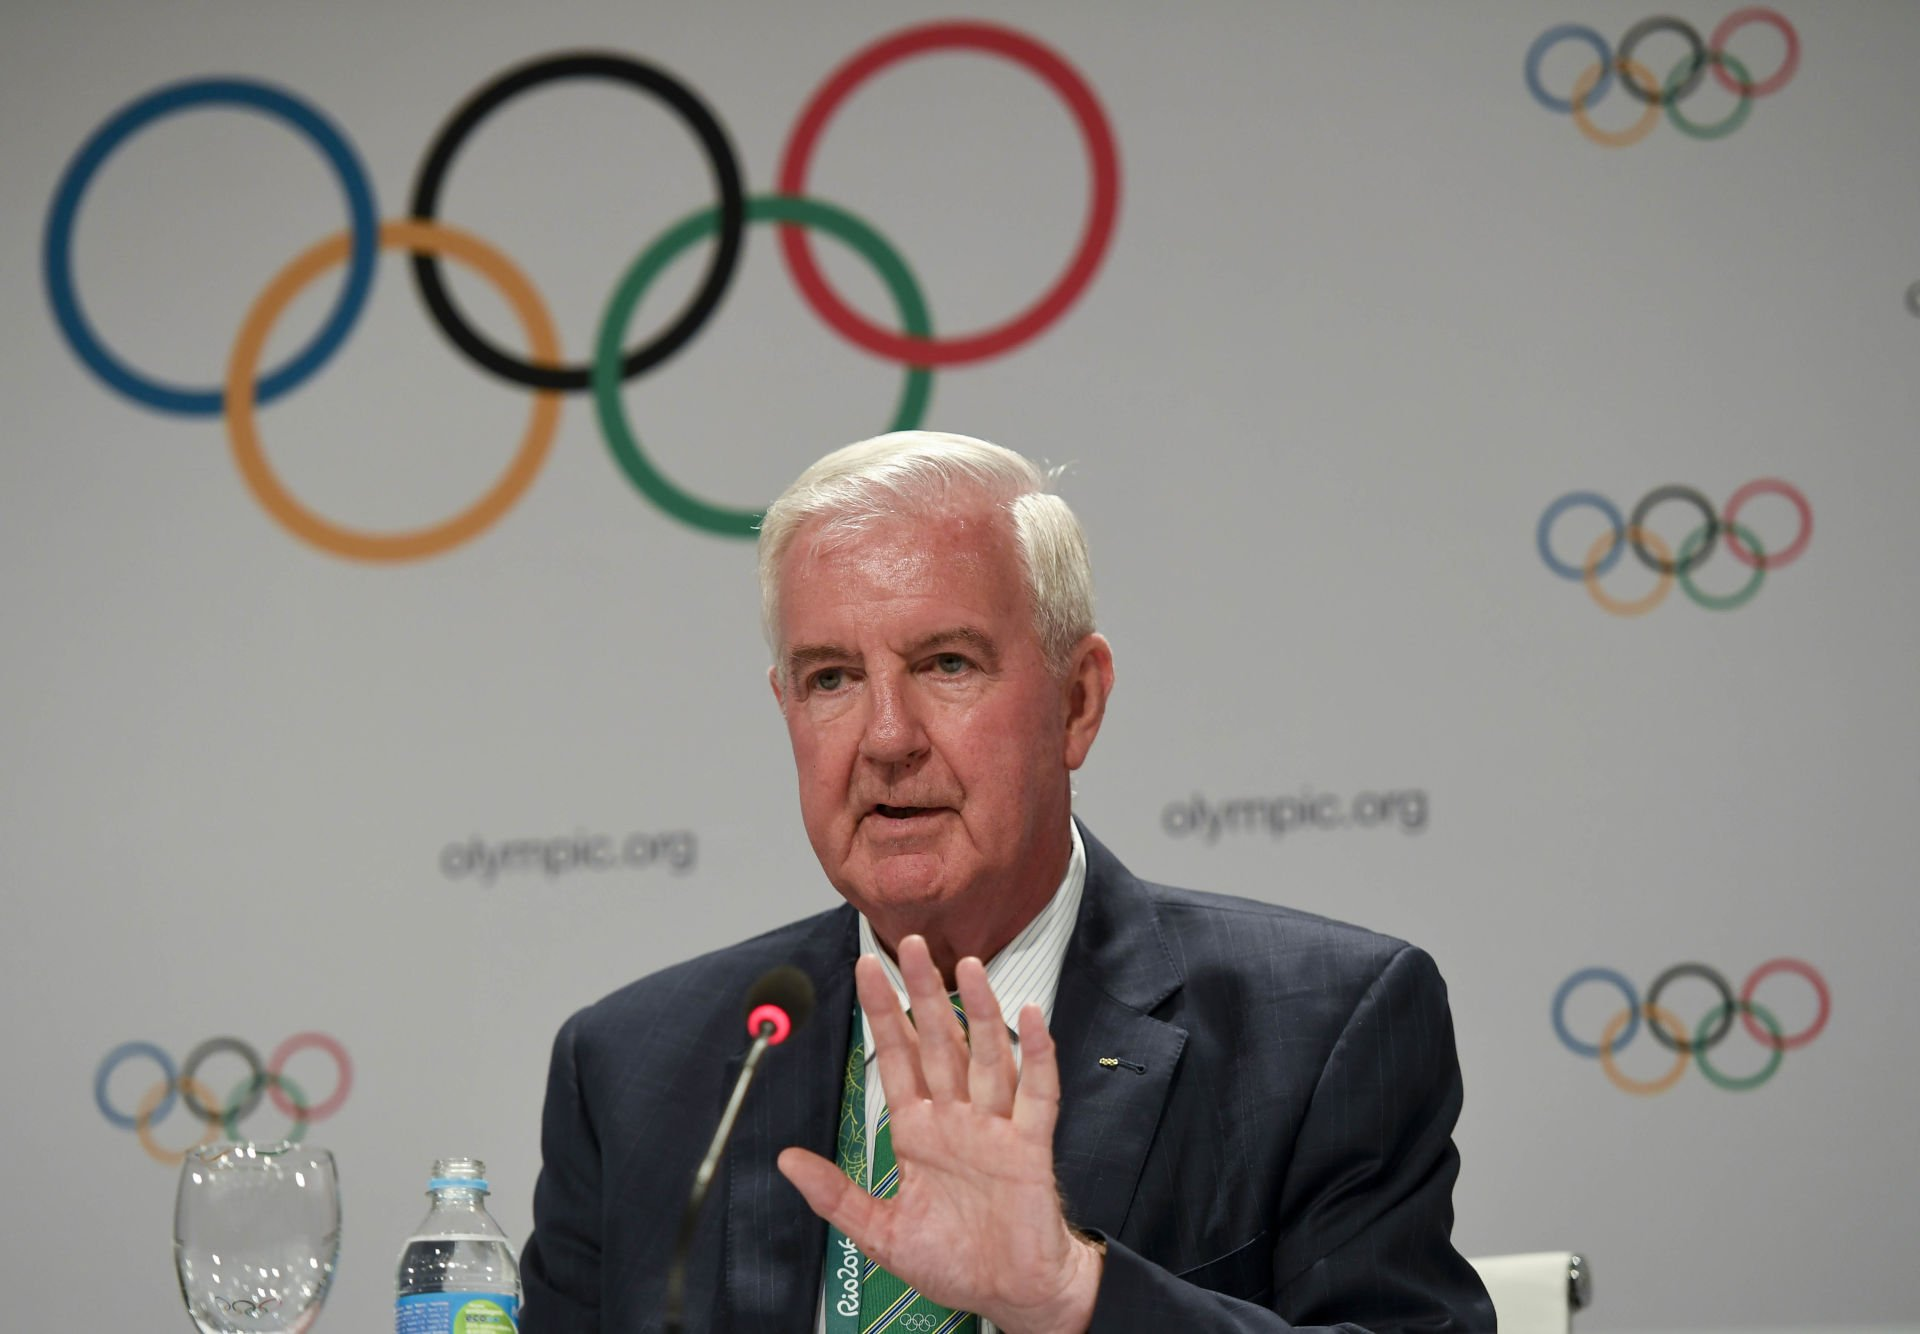 RIO DE JANEIRO, Aug. 2, 2016 Craig Reedie, president of WADA speaks at the press conference of 129th IOC session in Rio de Janeiro, Brazil on Aug. 2, 2016. The 129th session of the International Olympic Committee (IOC) officially got underway Monday night with an inspiring ceremony at the Cidade Das Artes in Rio de Janeiro. dh) (Credit Image: Liu Jie/Xinhua via ZUMA Wire) OLIMPIADA IGRZYSKA OLIMPIJSKIE FOT. ZUMA/NEWSPIX.PL POLAND ONLY! --- Newspix.pl *** Local Caption *** www.newspix.pl mail us: info@newspix.pl call us: 0048 022 23 22 222 --- Polish Picture Agency by Ringier Axel Springer Poland